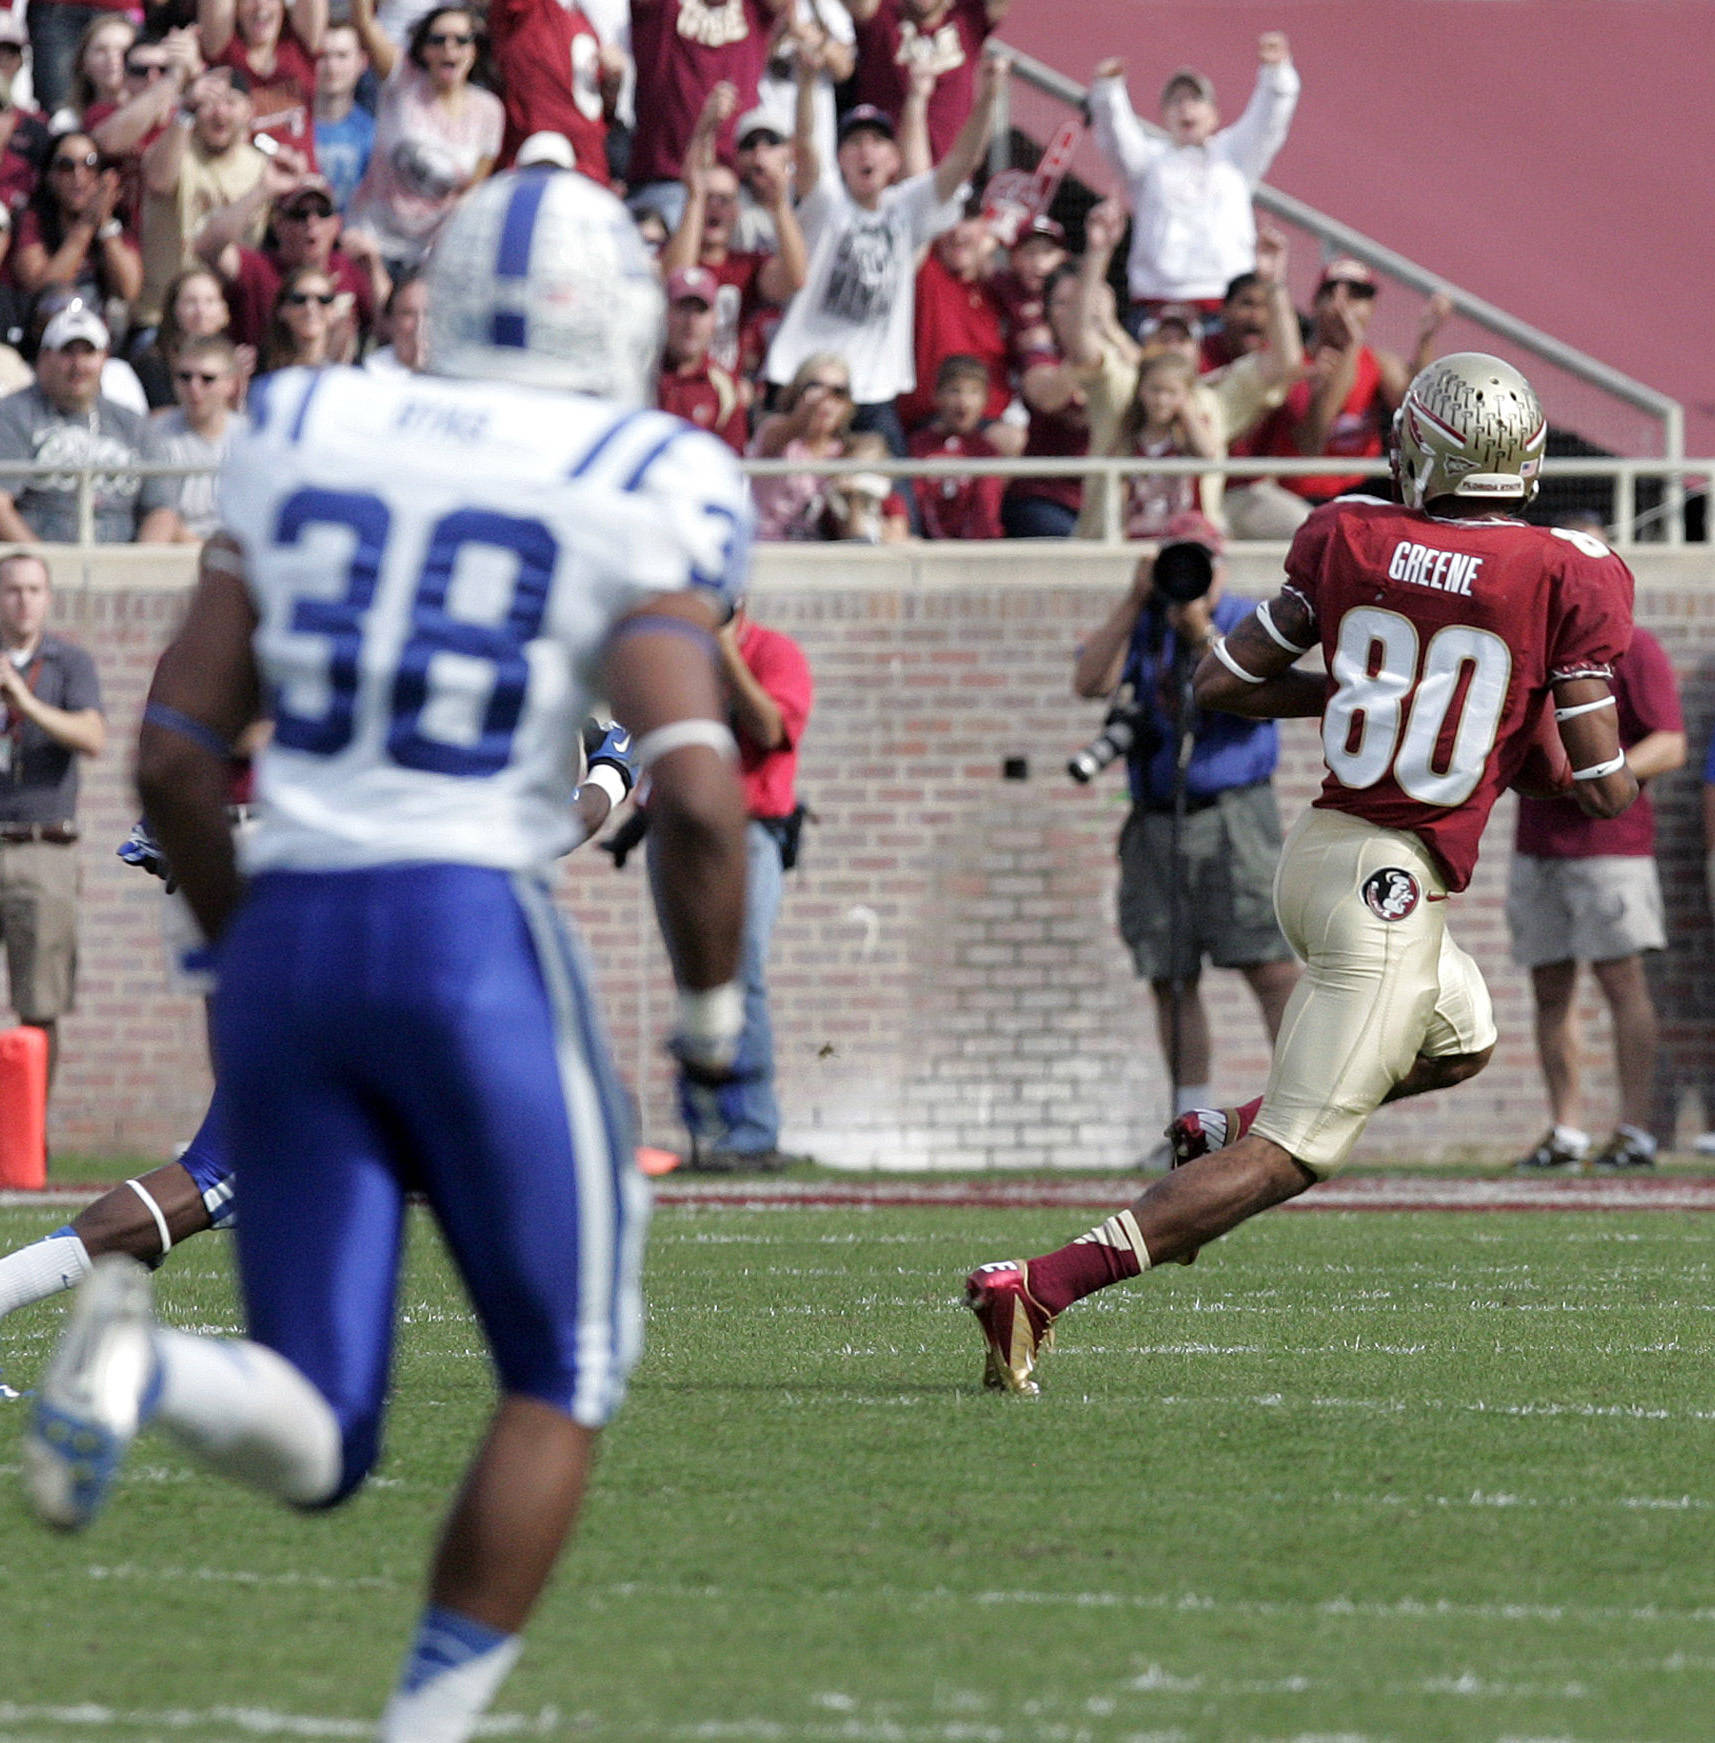 Florida State's Rashad Greene outruns the Duke defense for a touchdown on a long pass reception in the first quarter. (AP Photo/Steve Cannon)